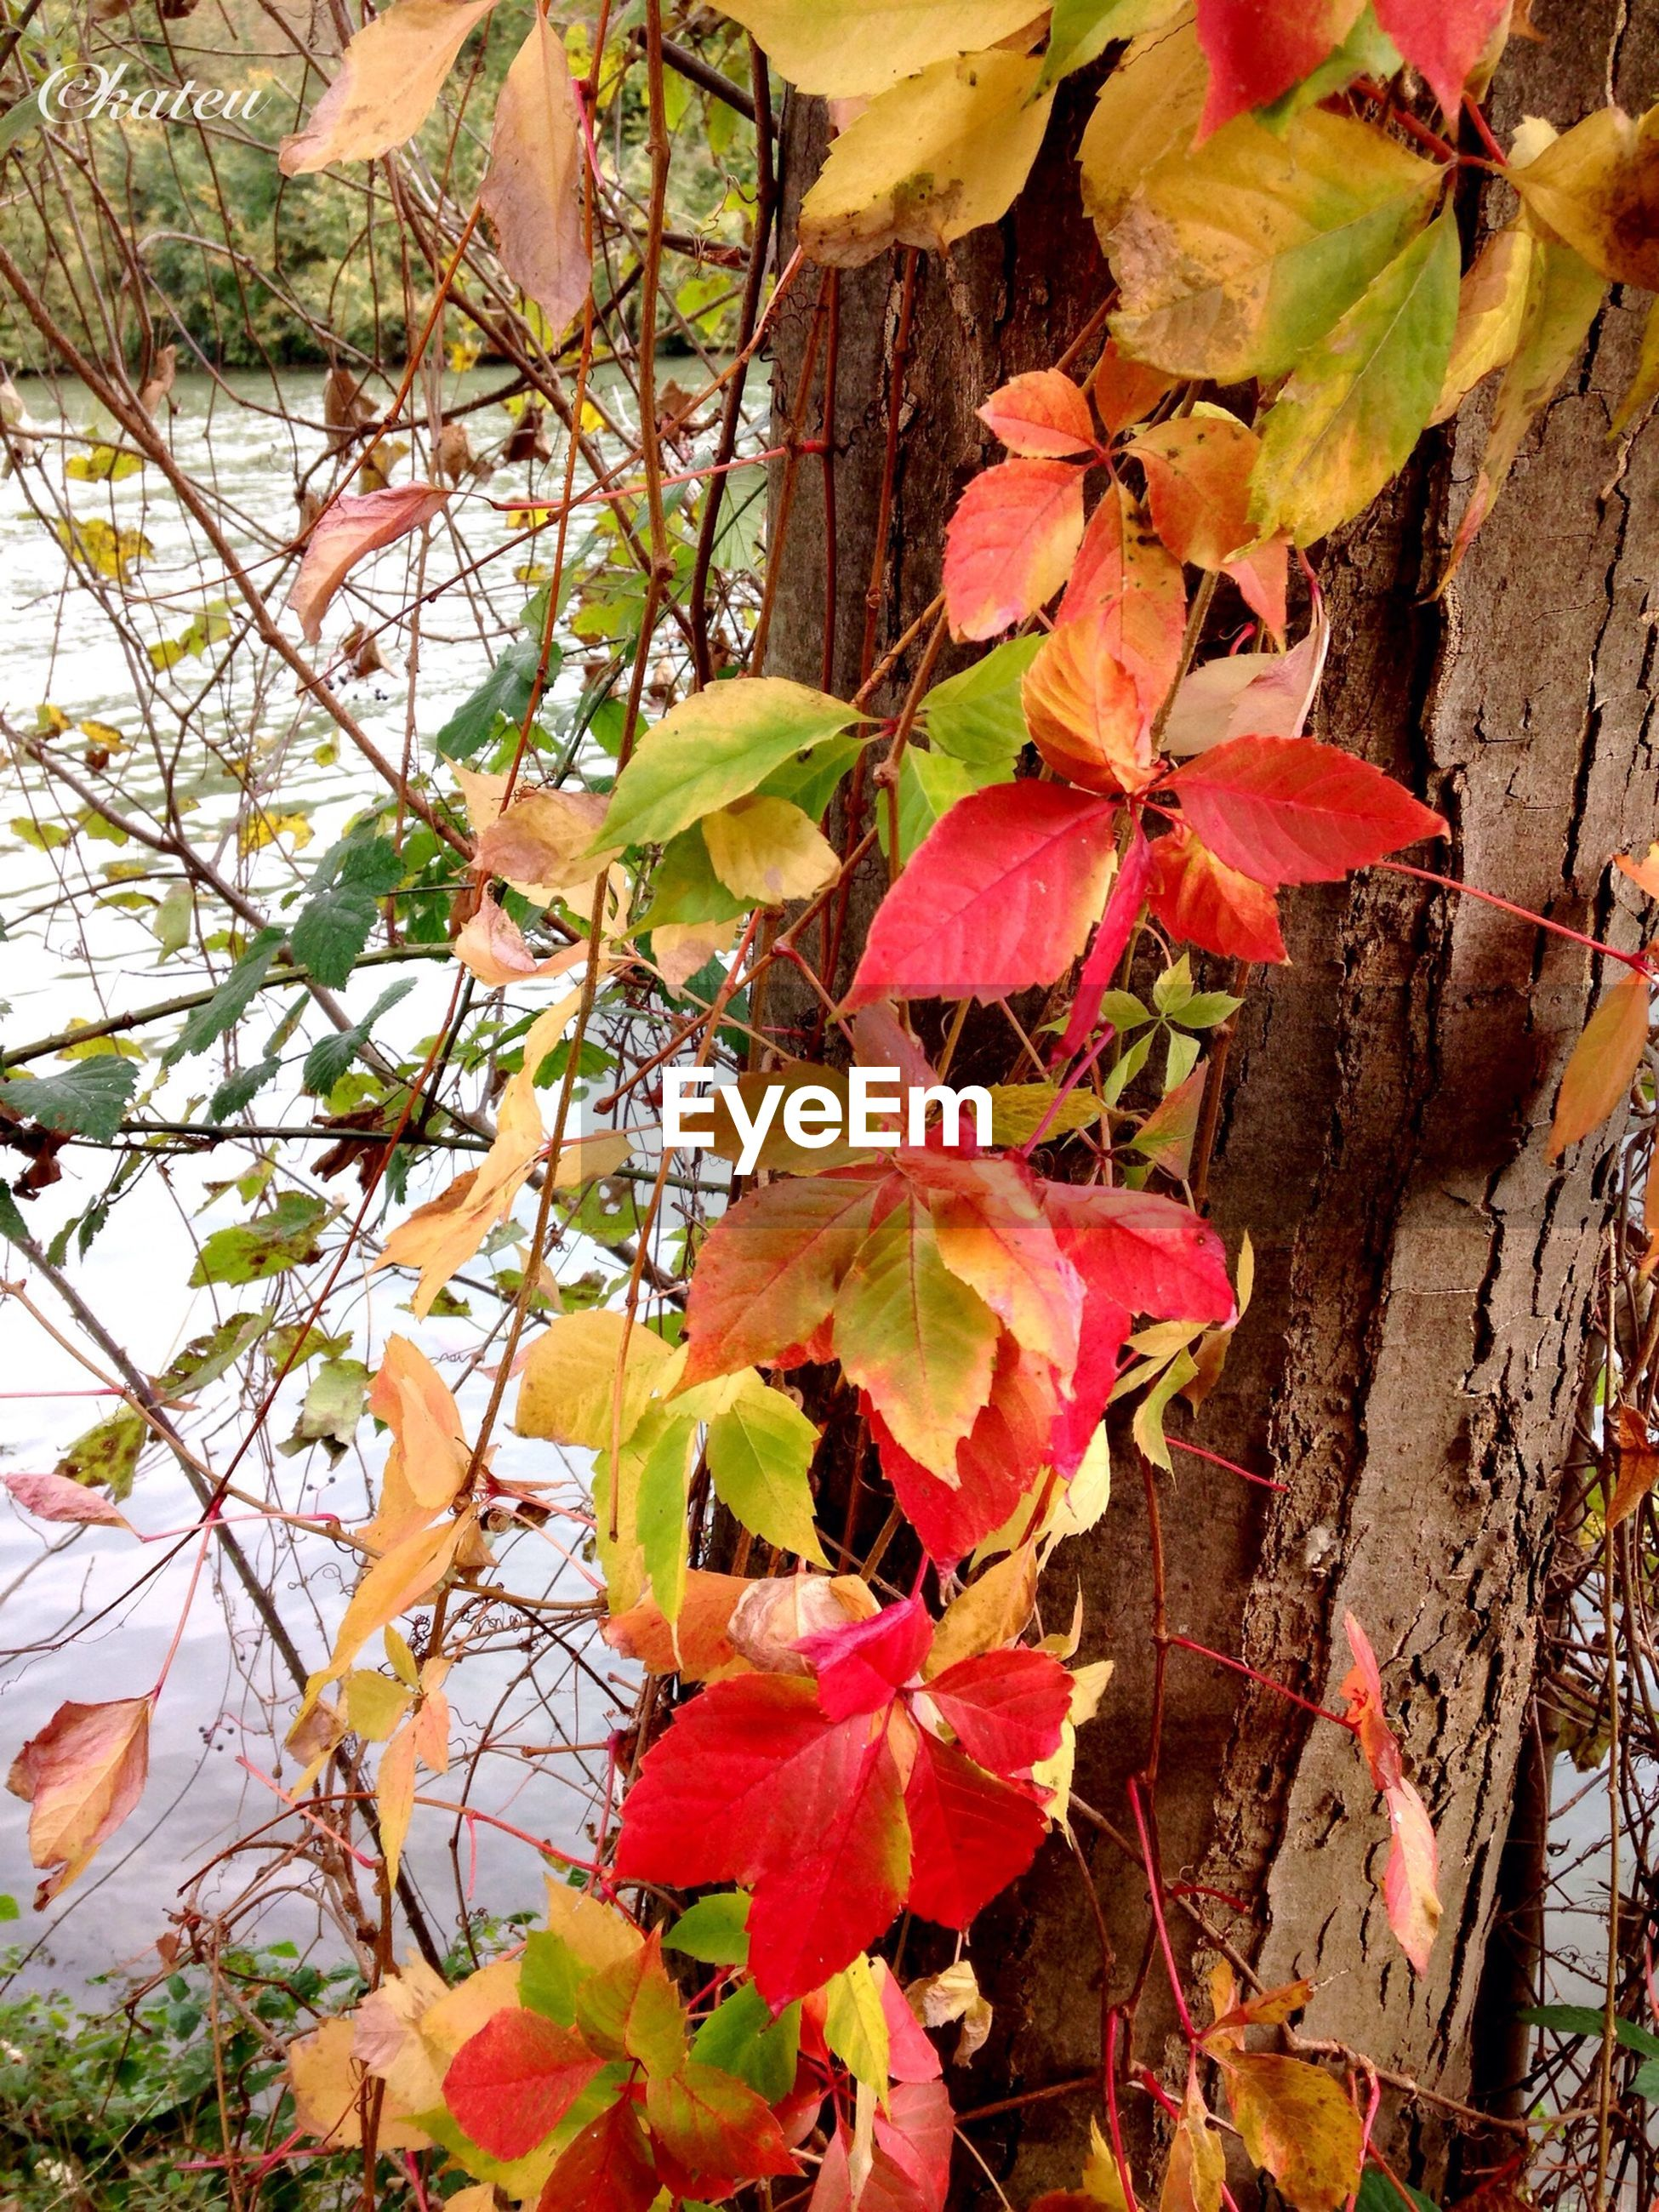 leaf, autumn, growth, tree, branch, change, nature, red, season, beauty in nature, plant, day, tranquility, leaves, tree trunk, outdoors, no people, low angle view, close-up, sunlight